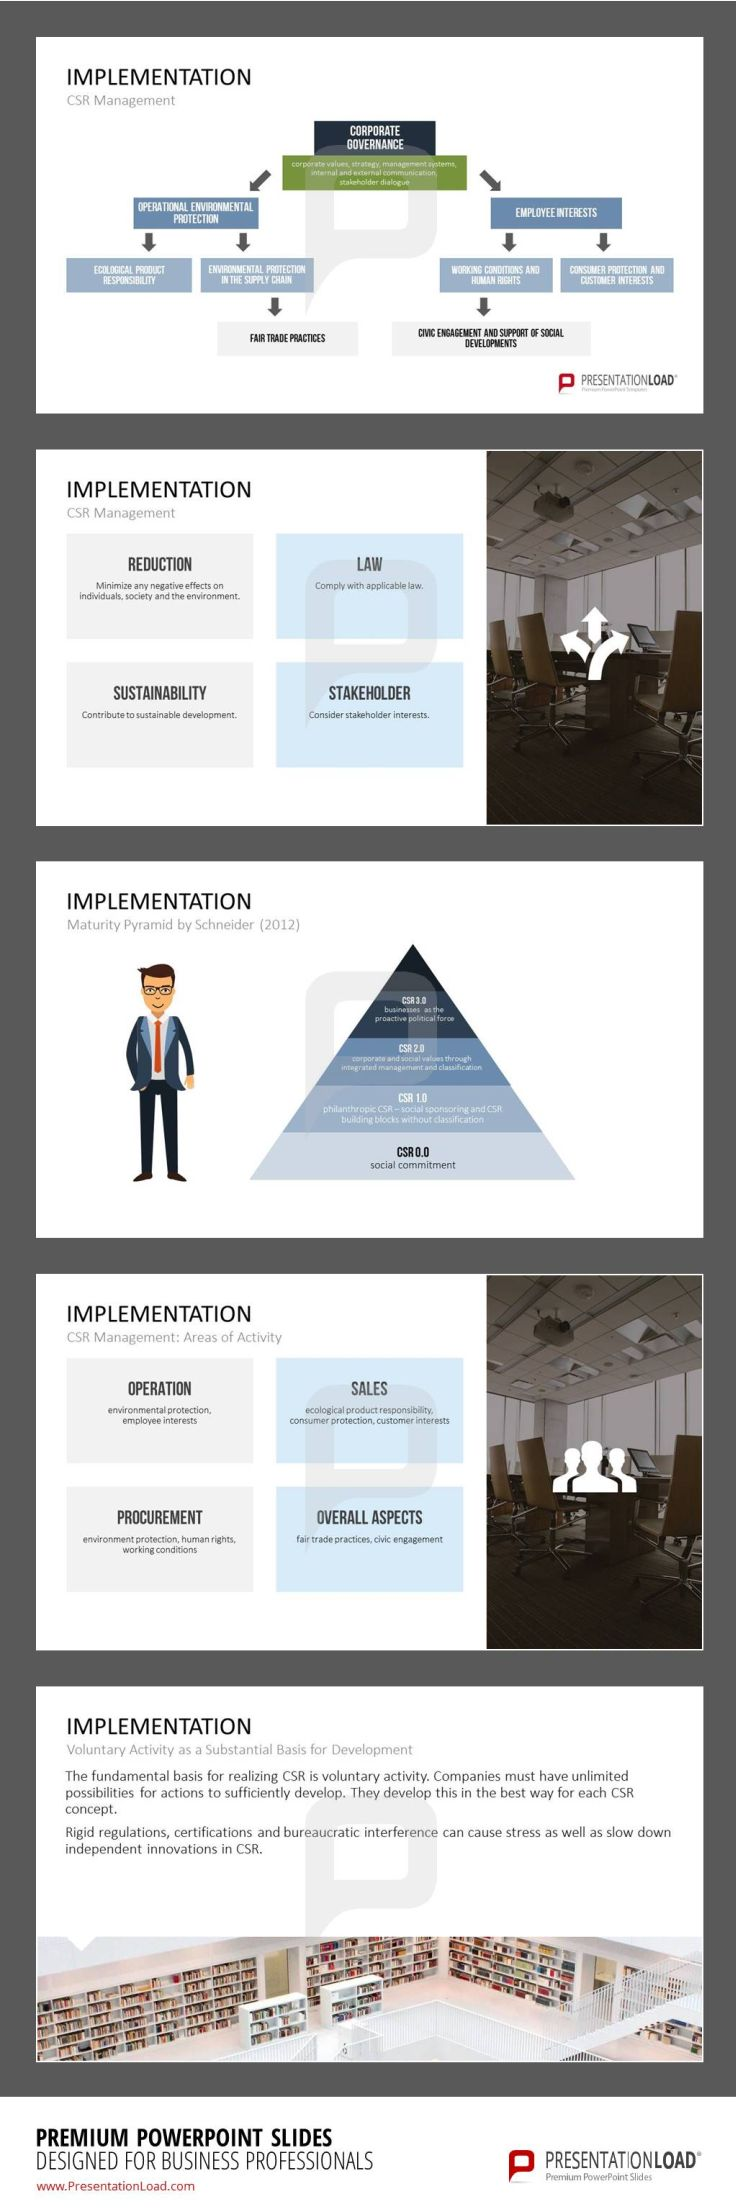 Key-Account-Management PowerPoint templates, forms and plans for as ...